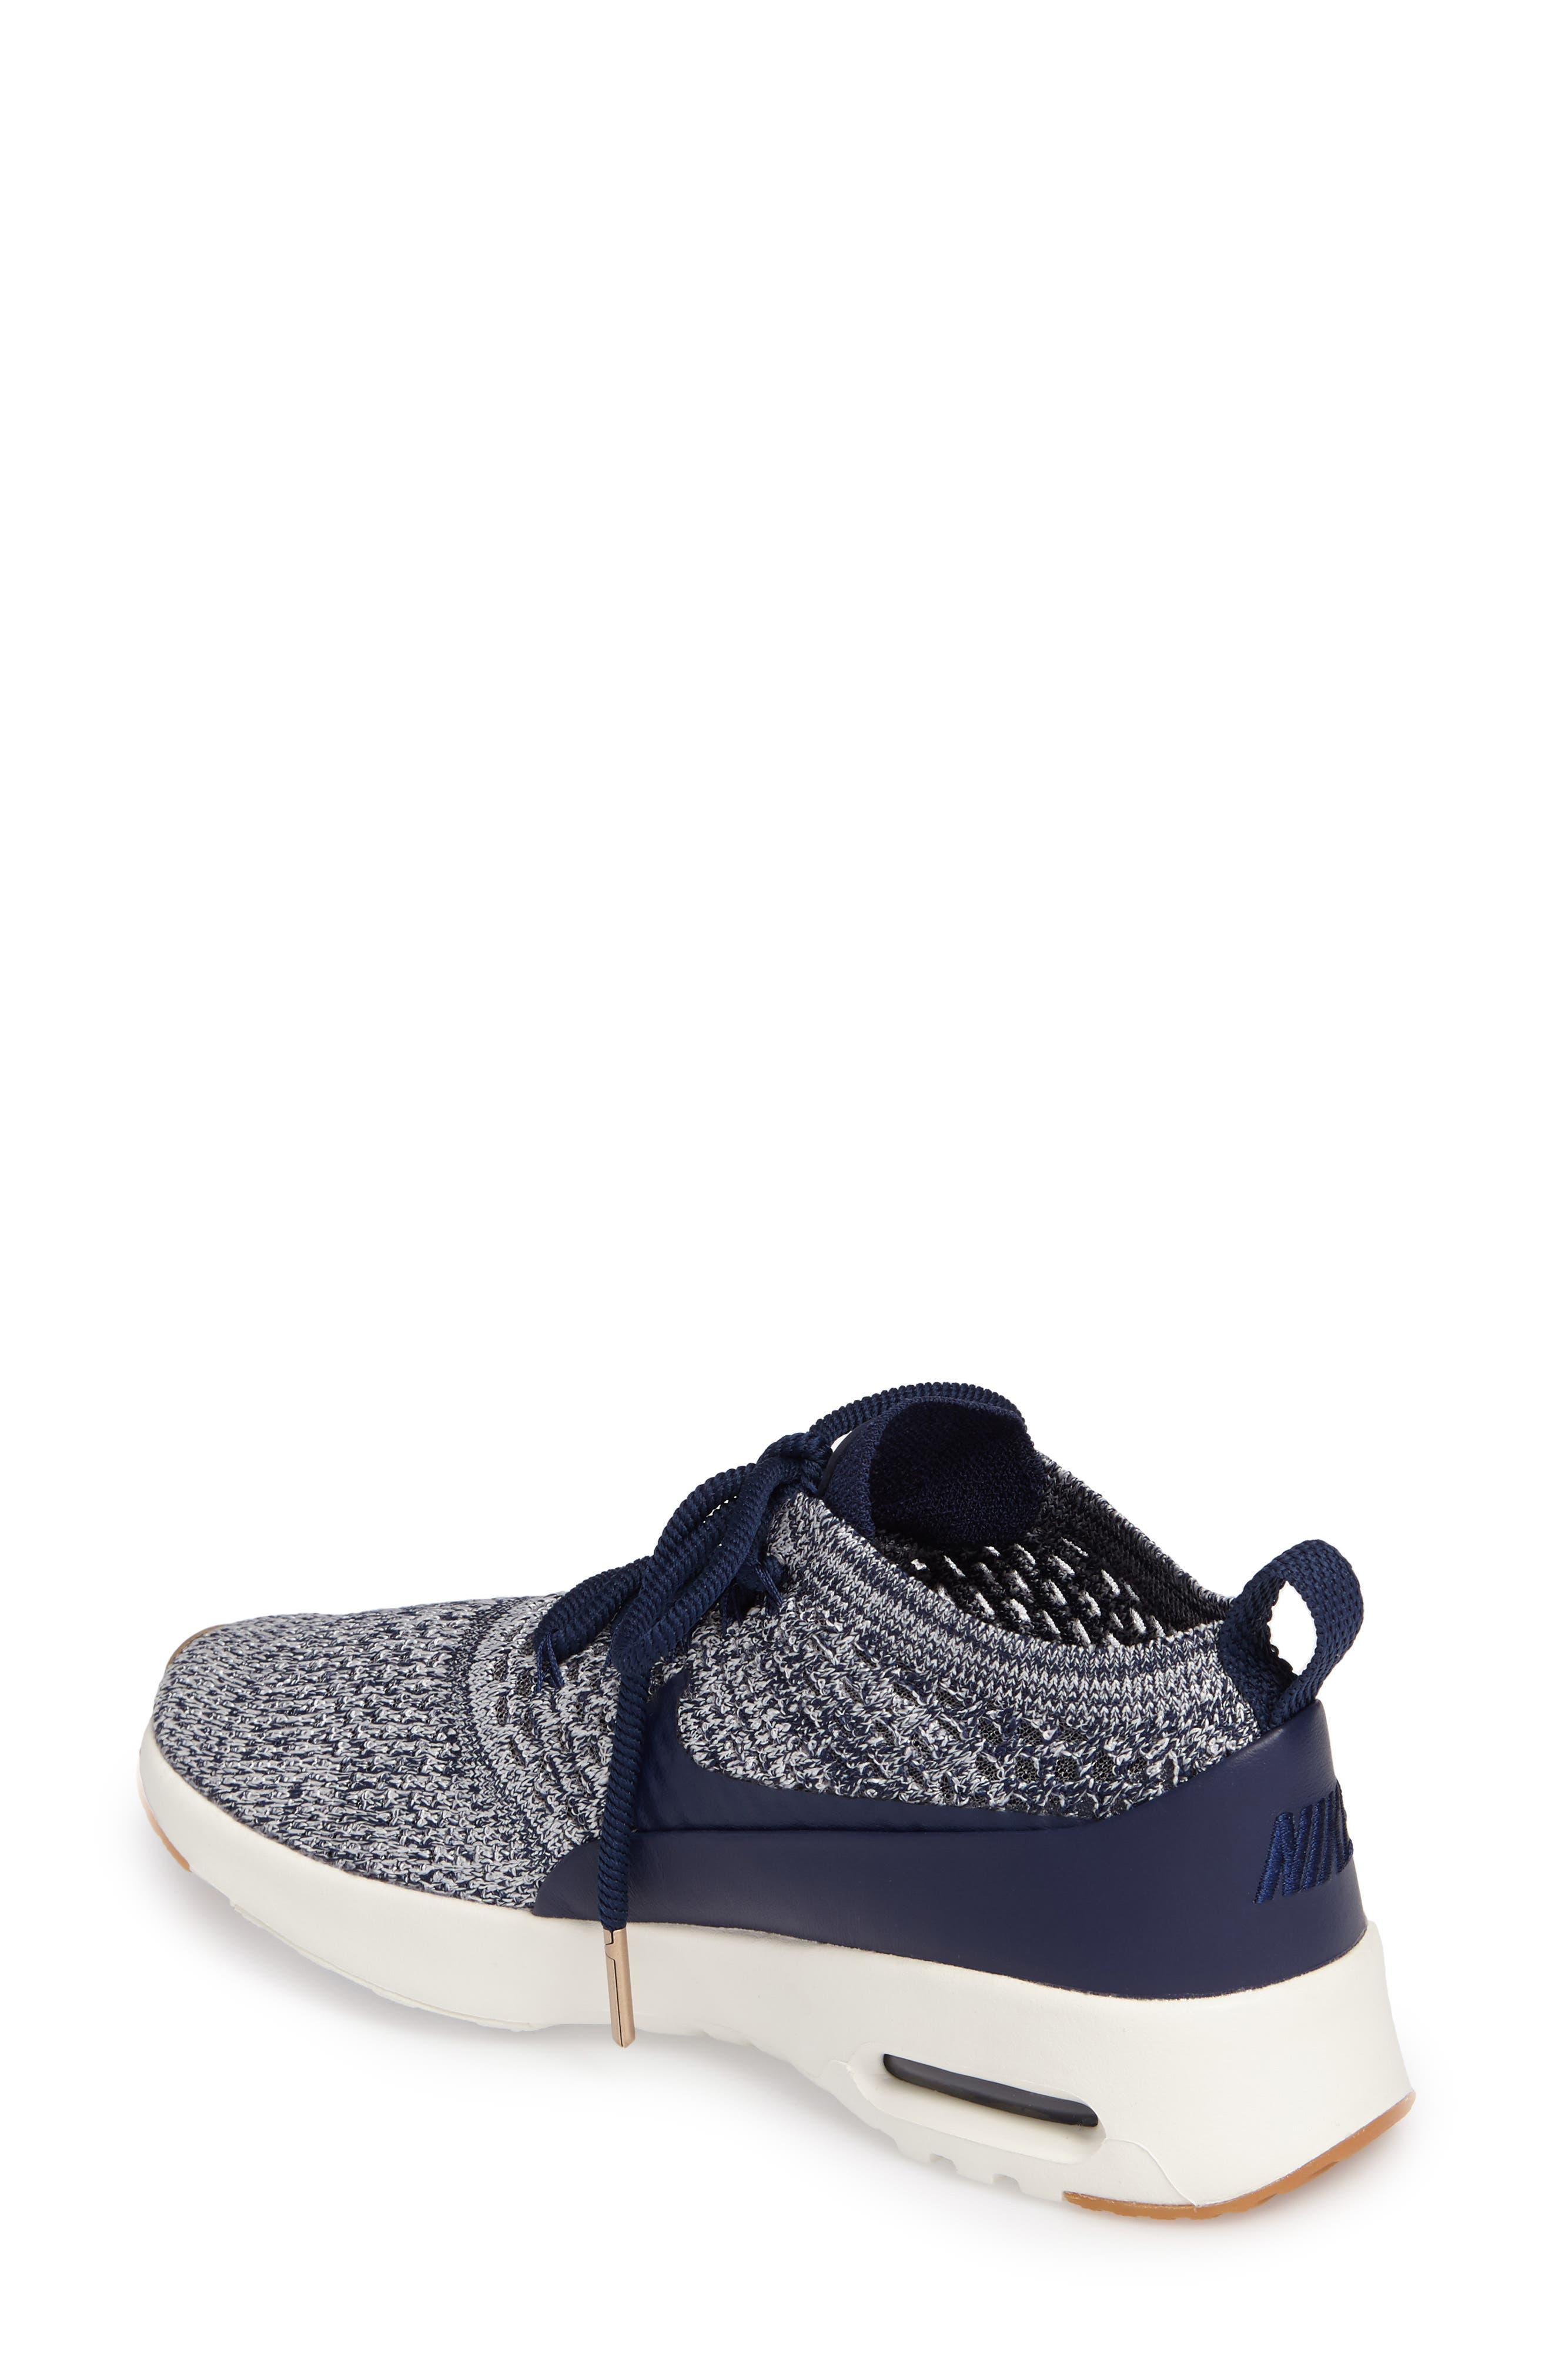 Air Max Thea Ultra Flyknit Sneaker,                             Alternate thumbnail 21, color,